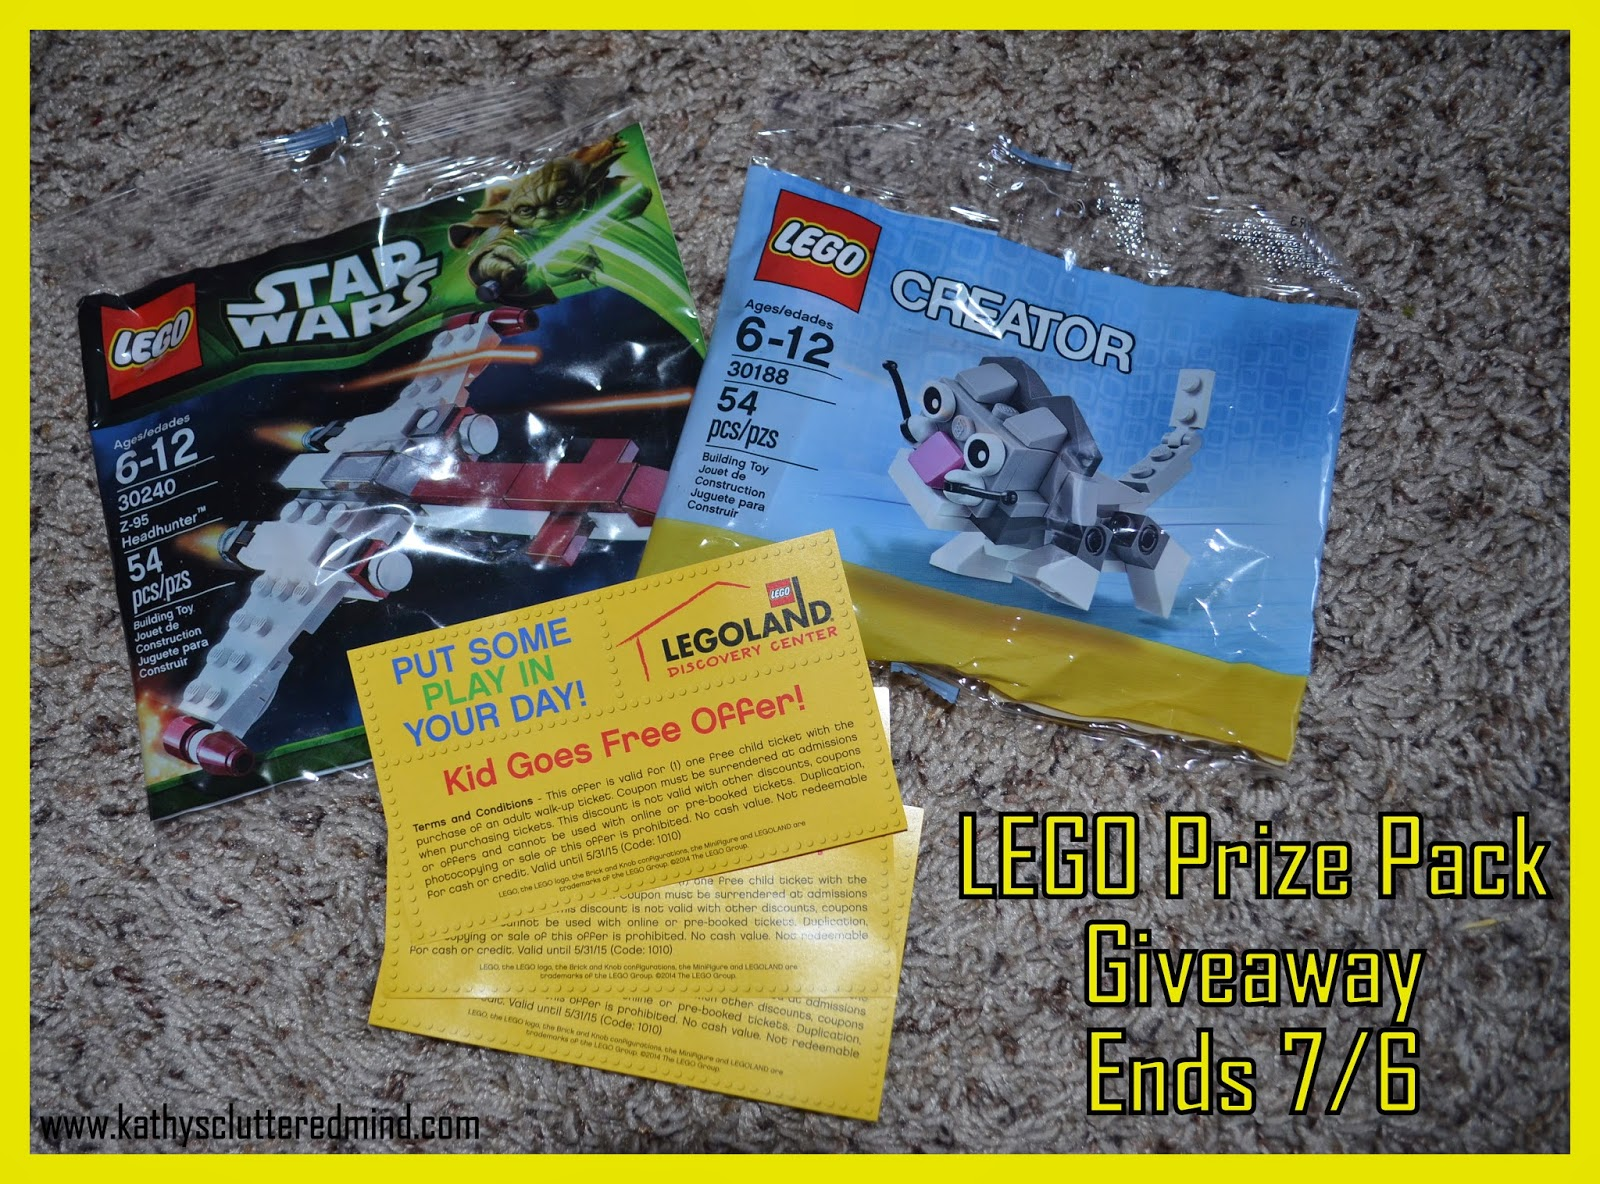 Kathys cluttered mind atlanta lego kidsfest review and star wars headhunter set 30240 as well as 2 great coupons for legoland discovery center atlanta buy 1 adult ticket get 1 kid free exp 53115 fandeluxe